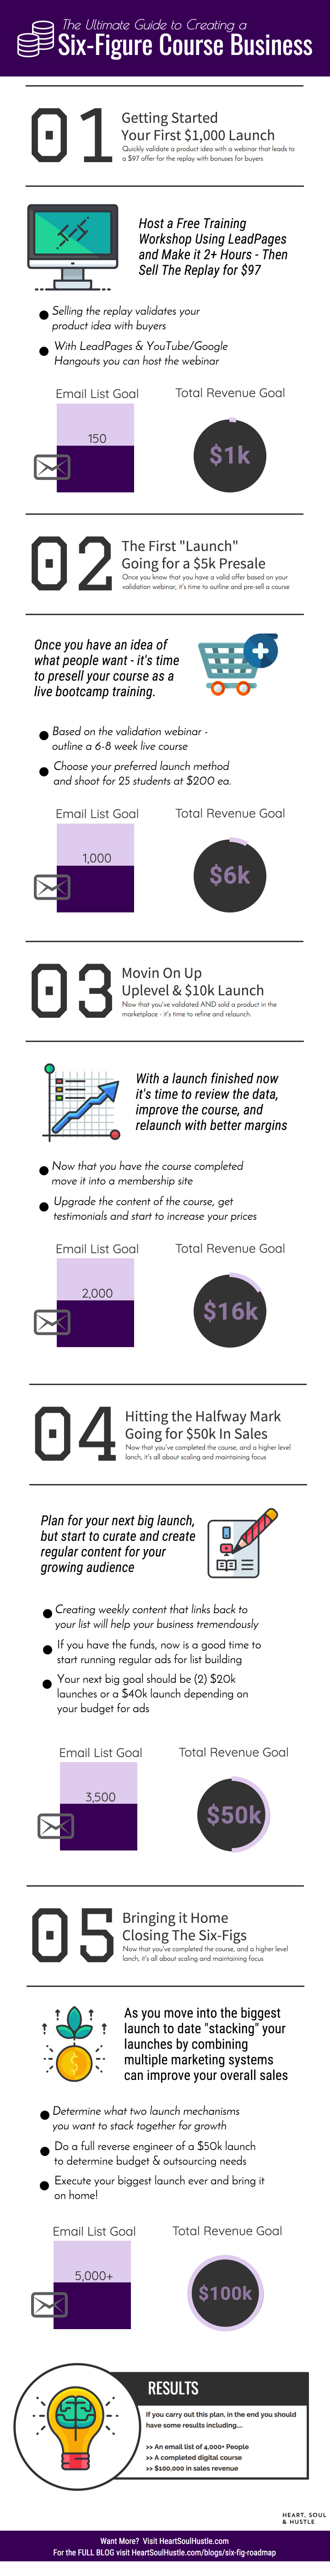 How to Go from Zero to Six-Figure in Your Digital Course Business: The Ultimate Guide - Infographic